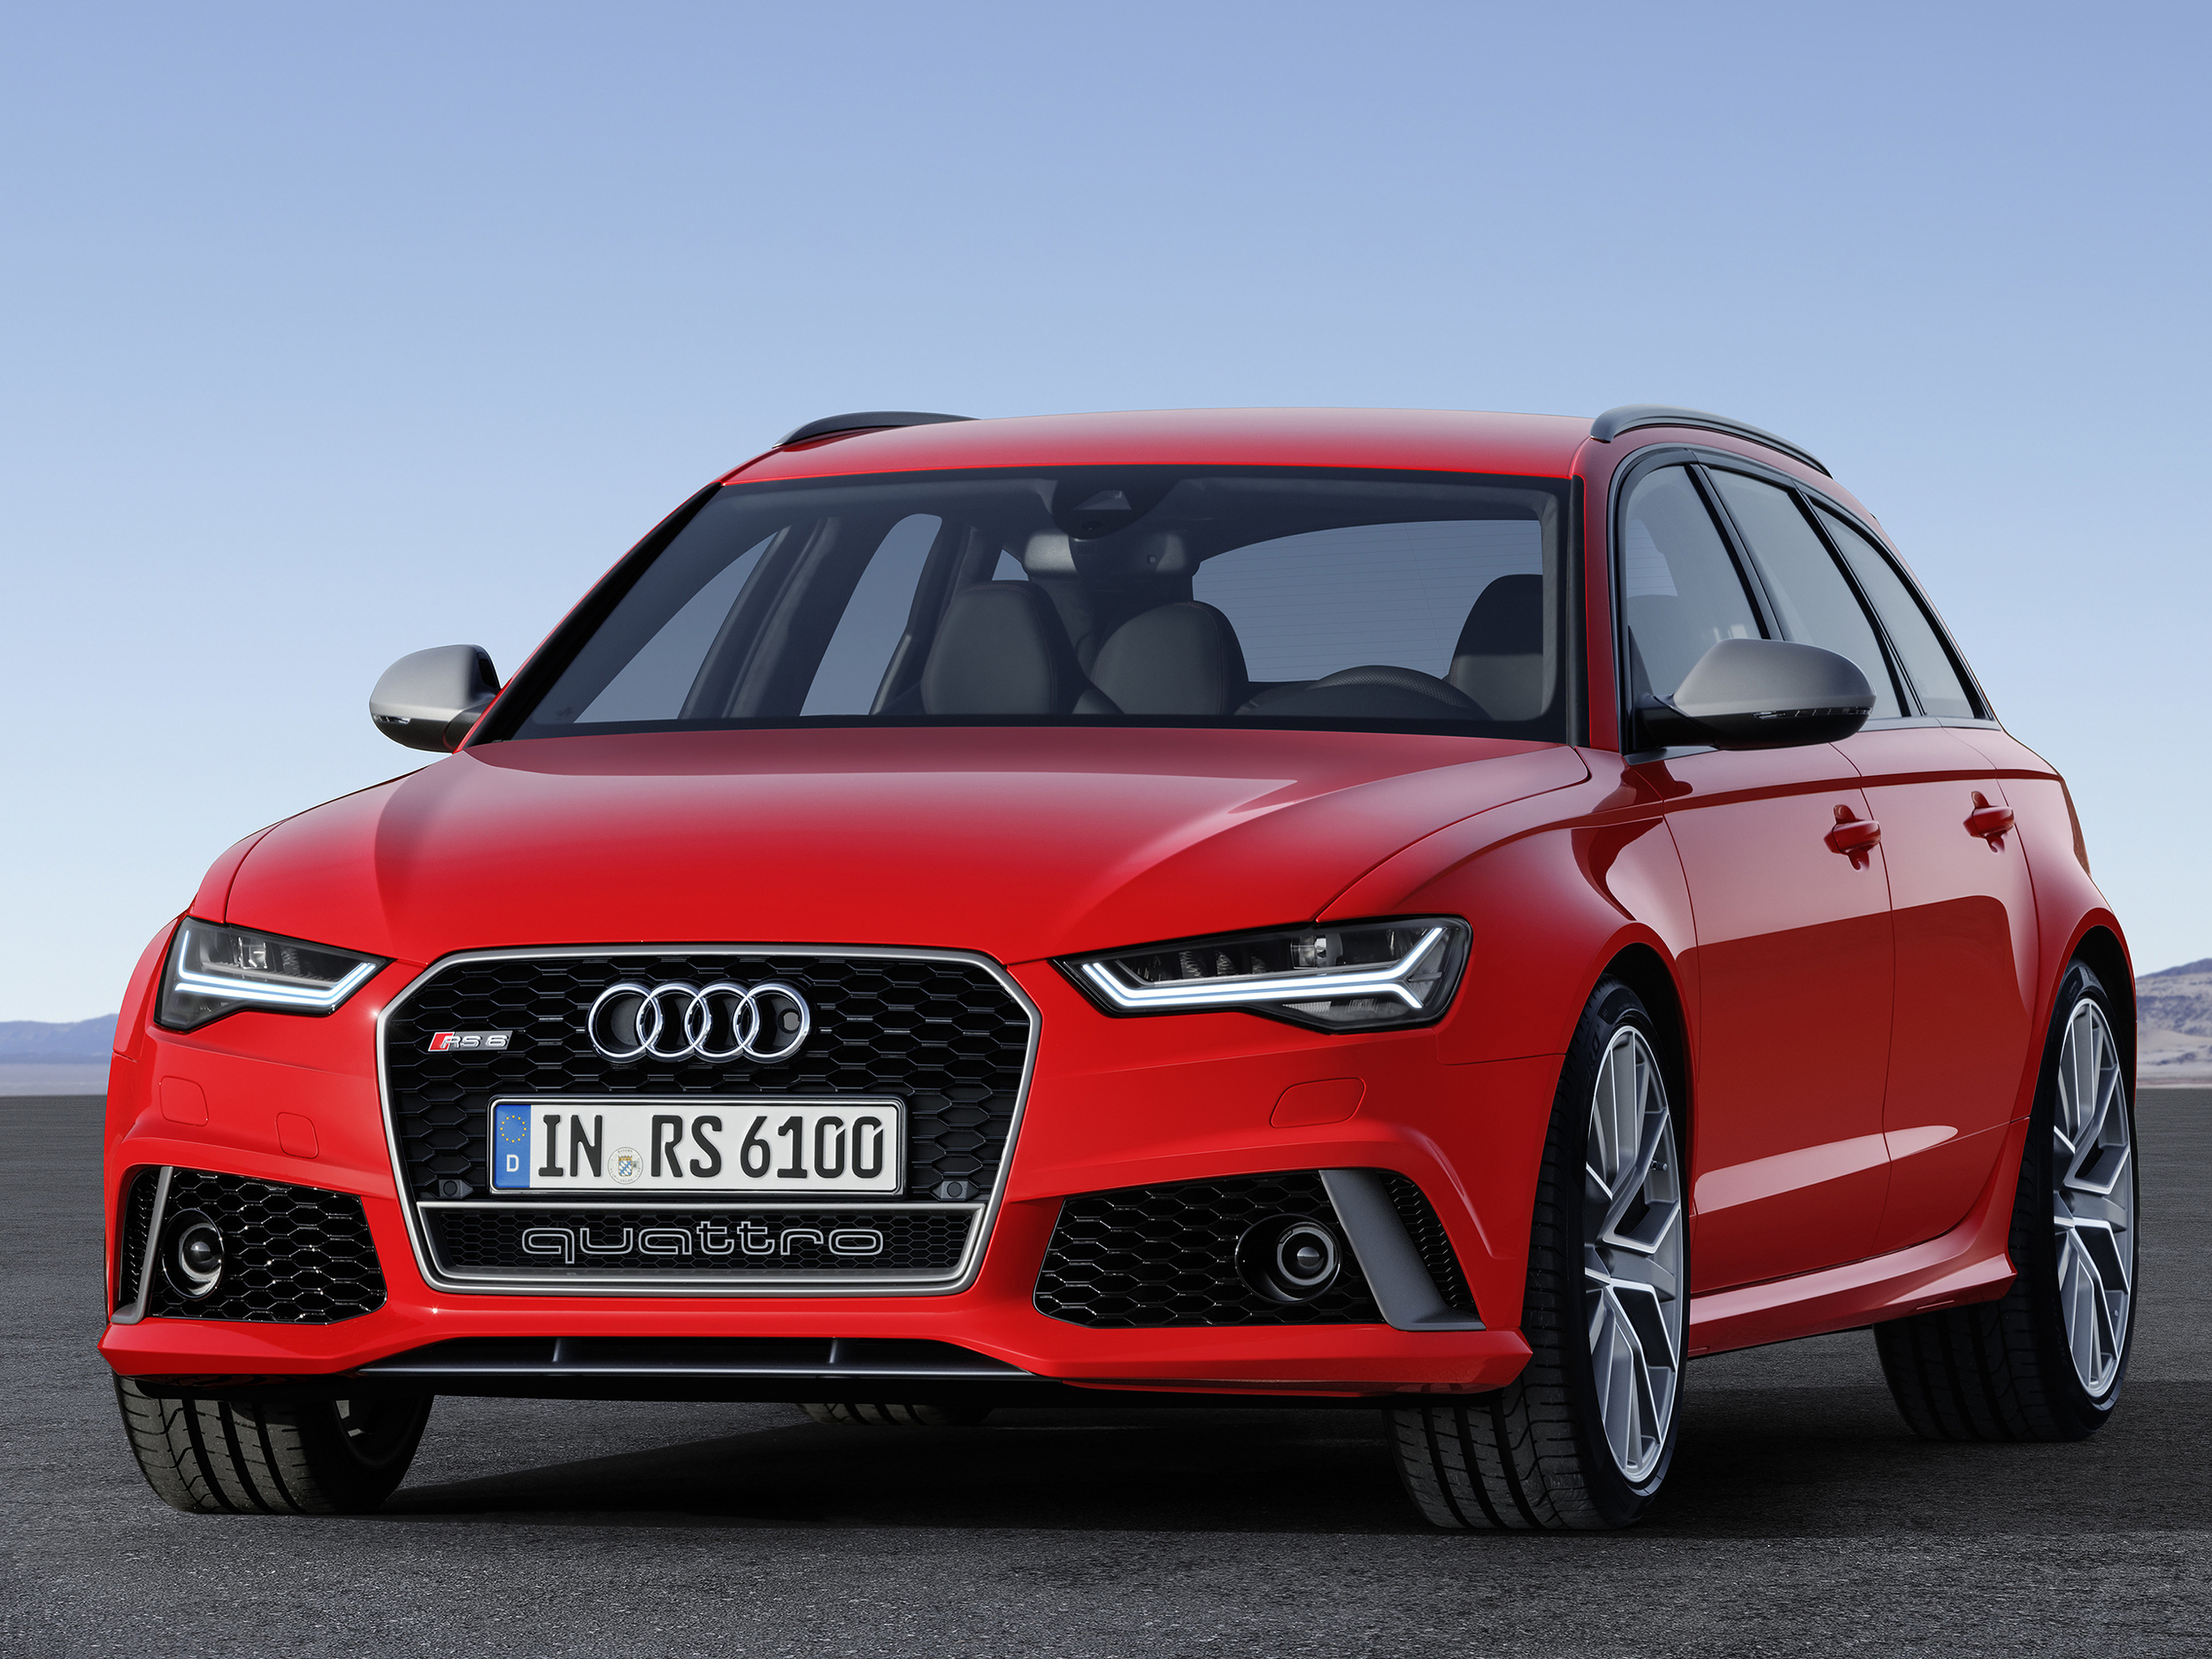 Audi unveils new RS 6 and RS 7 performance variants